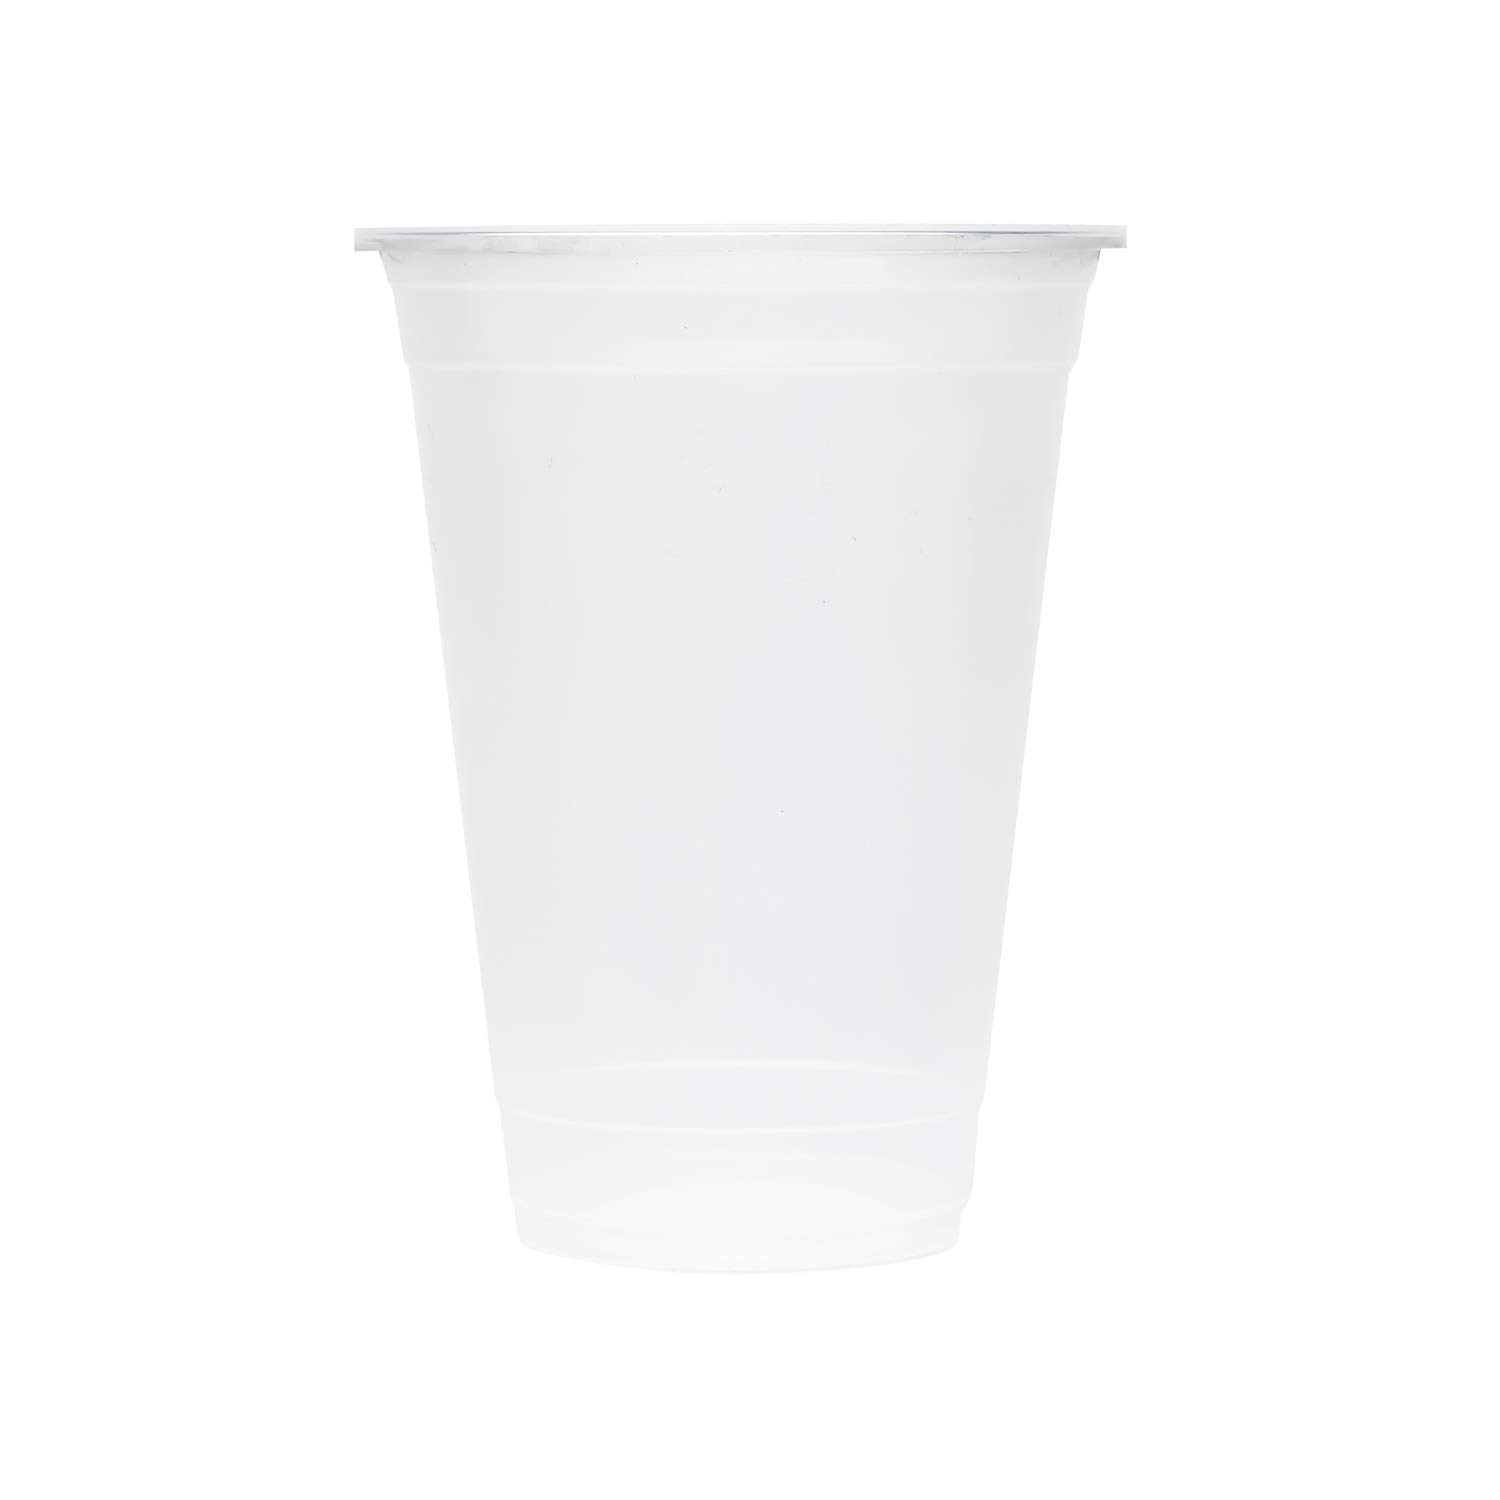 Karat C1011 16 oz 500 cc Translucent PP Modern Cups (Case of 2000)